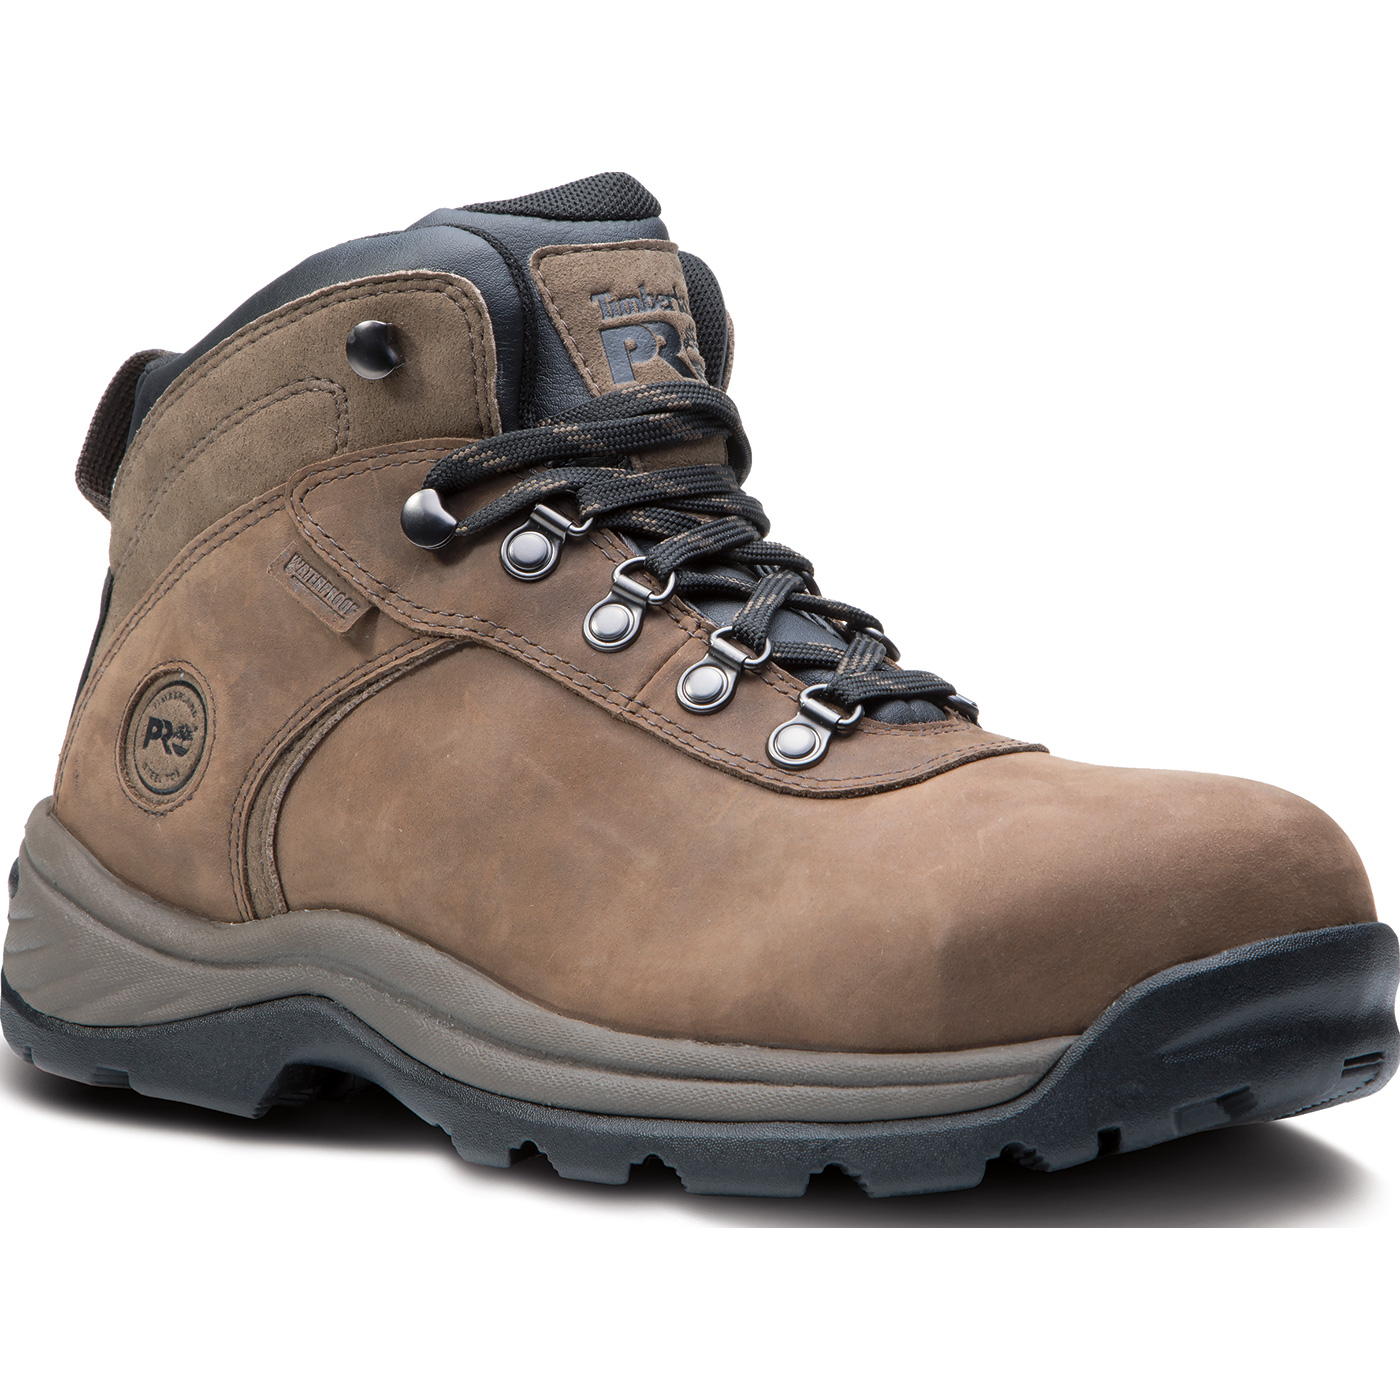 6963ca01dc87 Timberland PRO Flume Mid Men s Steel Toe Electrical Hazard Waterproof Work  ShoeTimberland PRO Flume Mid Men s Steel Toe Electrical Hazard Waterproof  Work ...